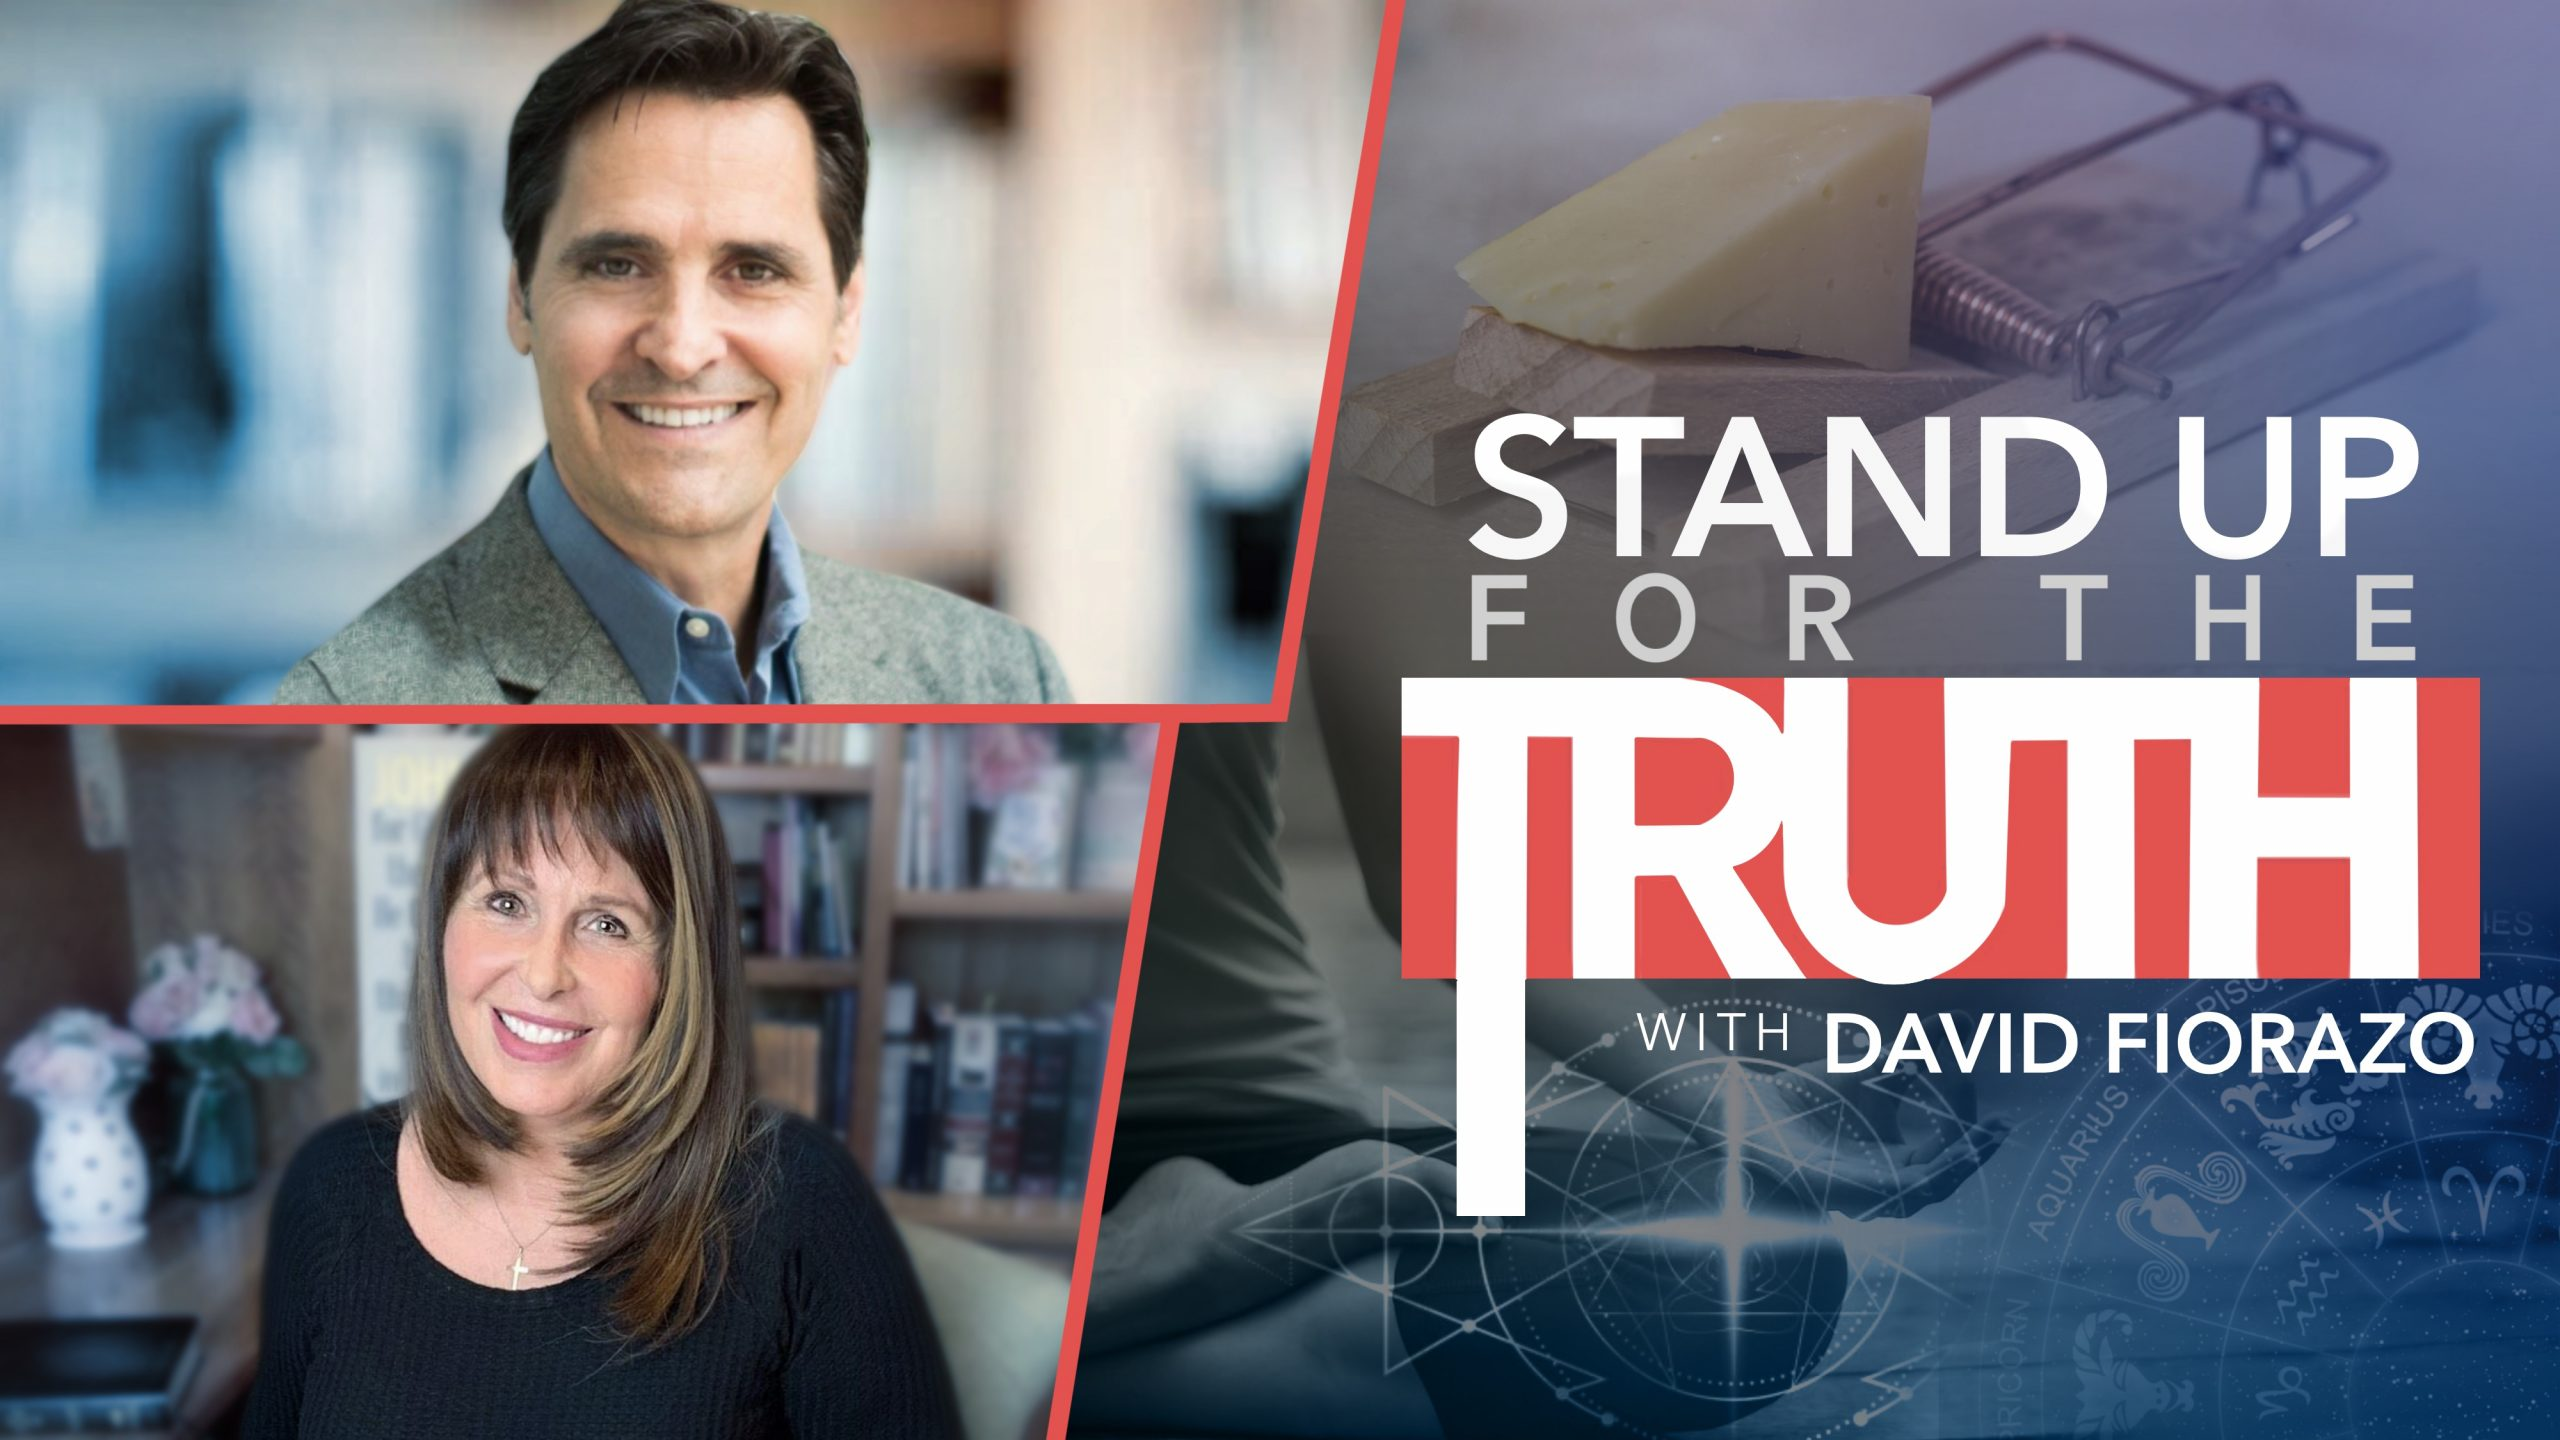 Stand Up for the truth david fiorazo doreen virtue